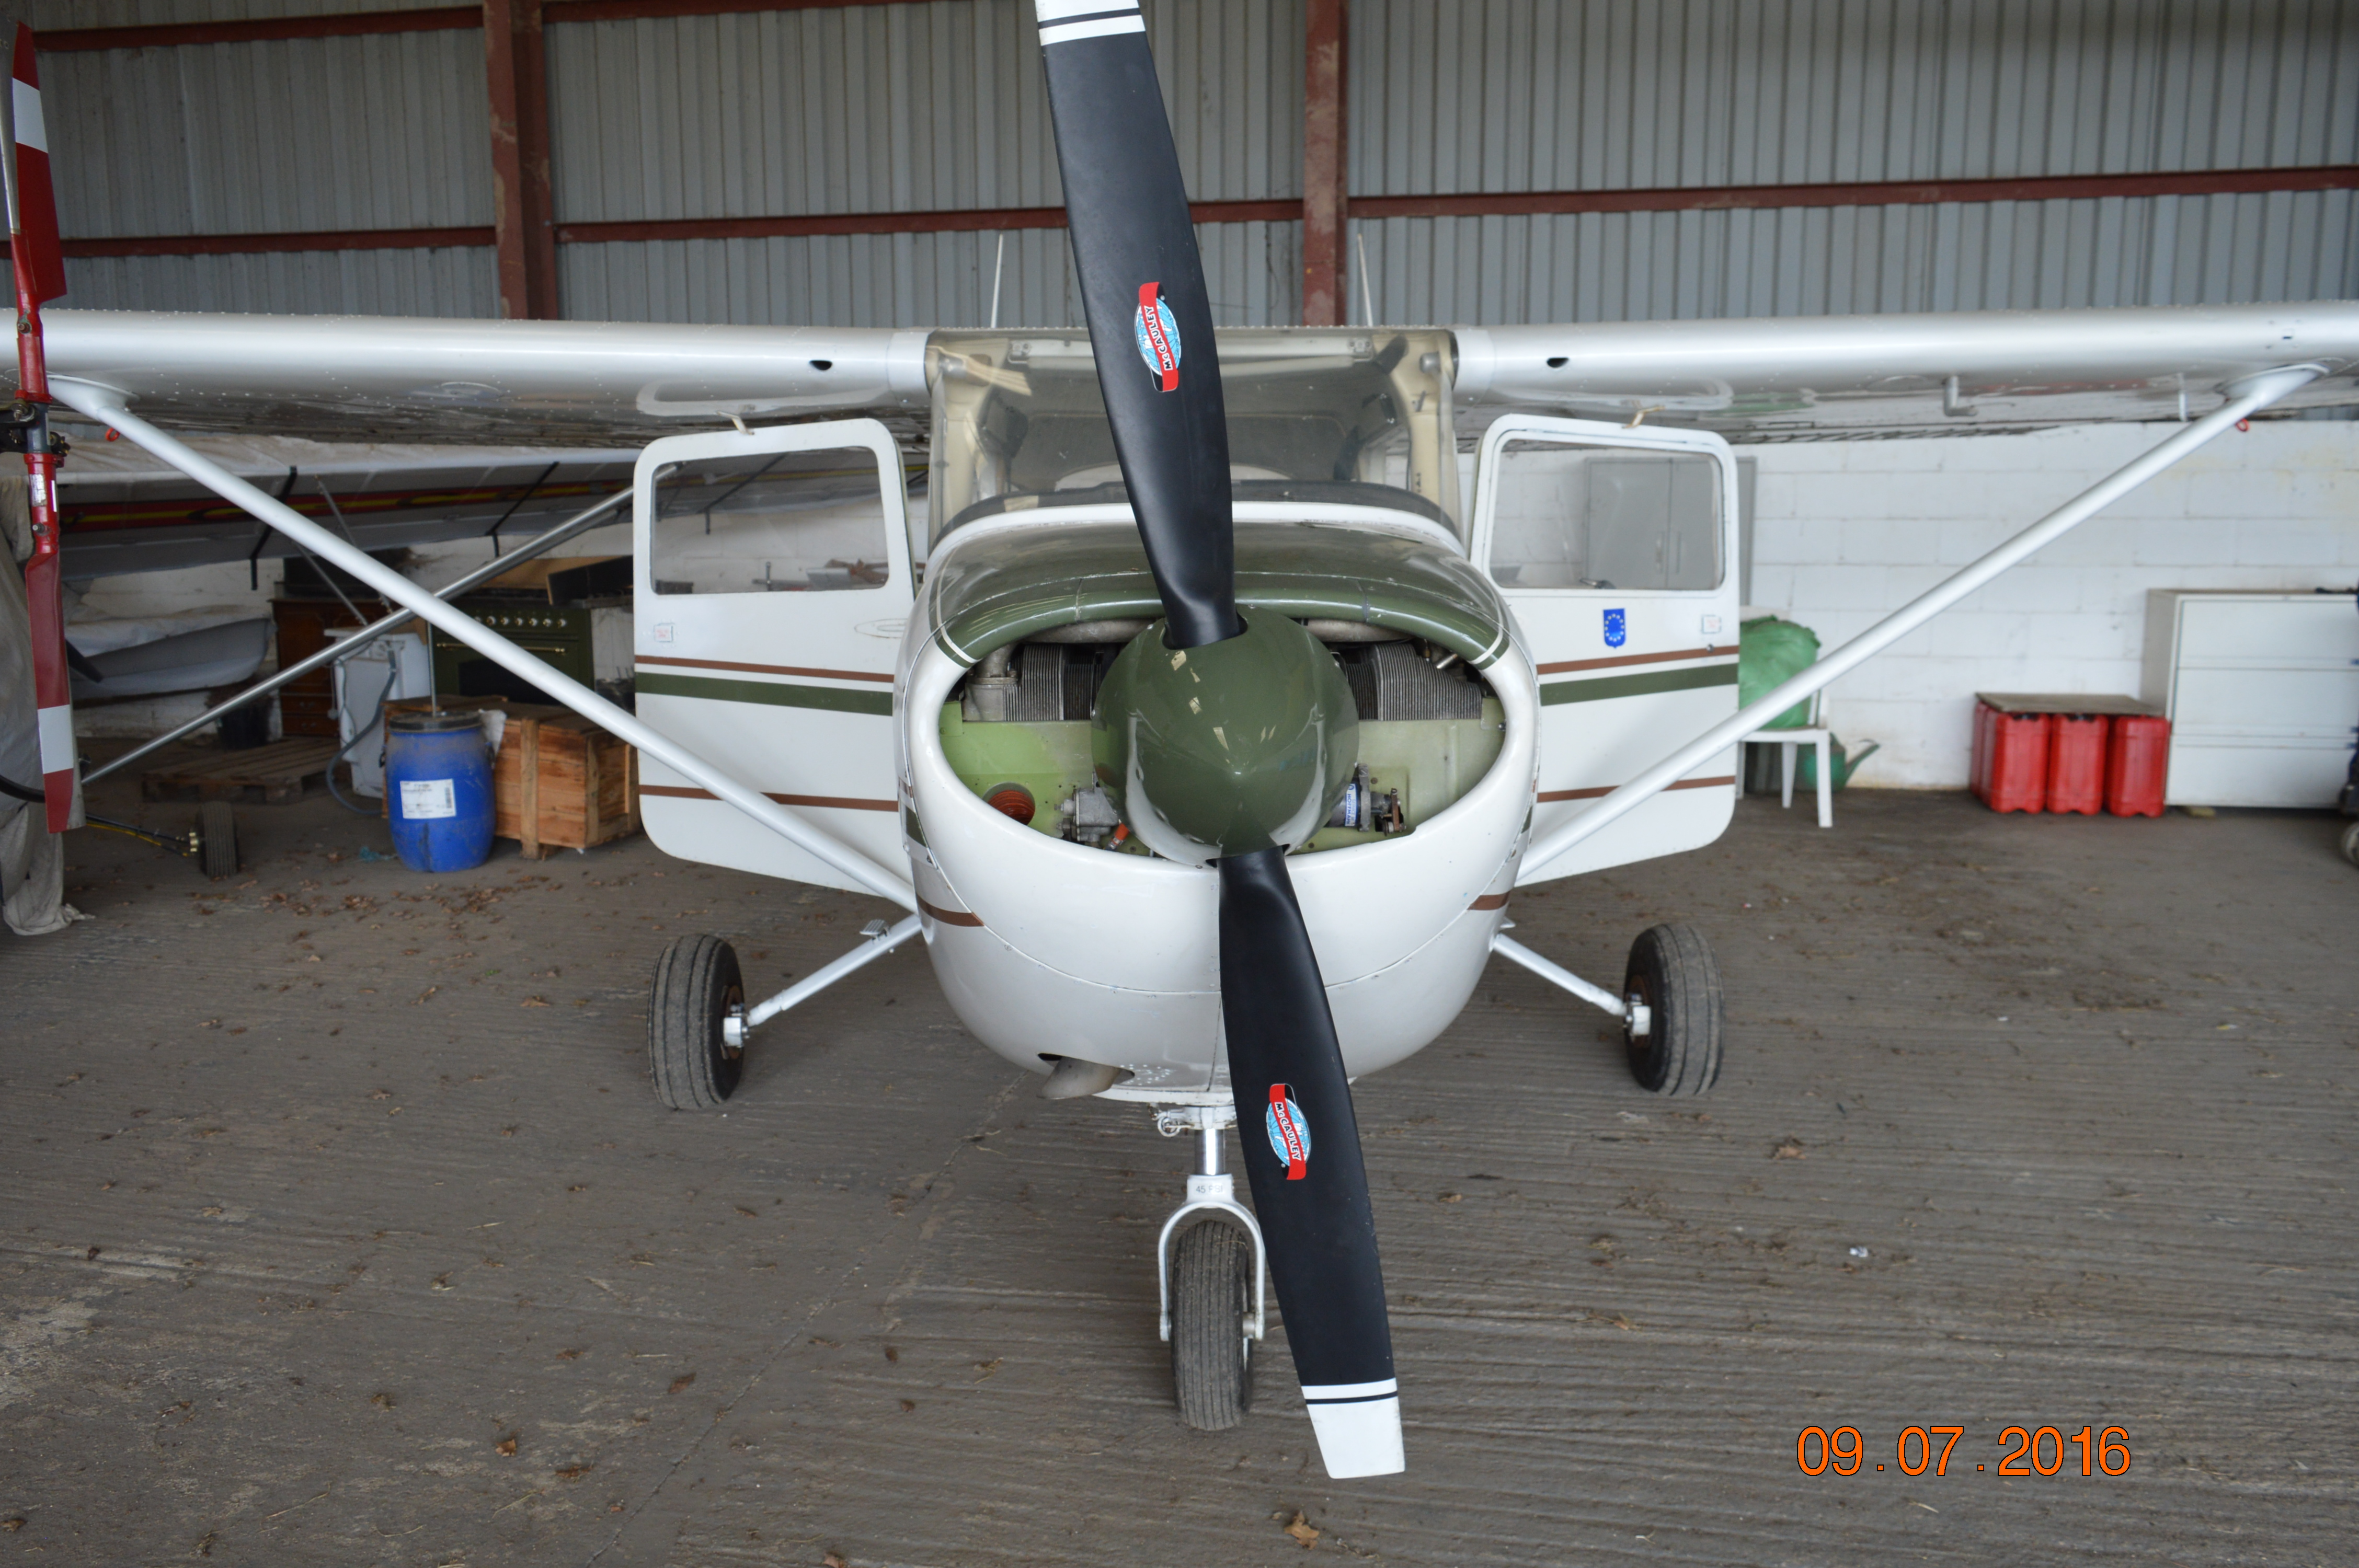 Bv Reims 1971 Reims Cessna 172 Rocket For Sale